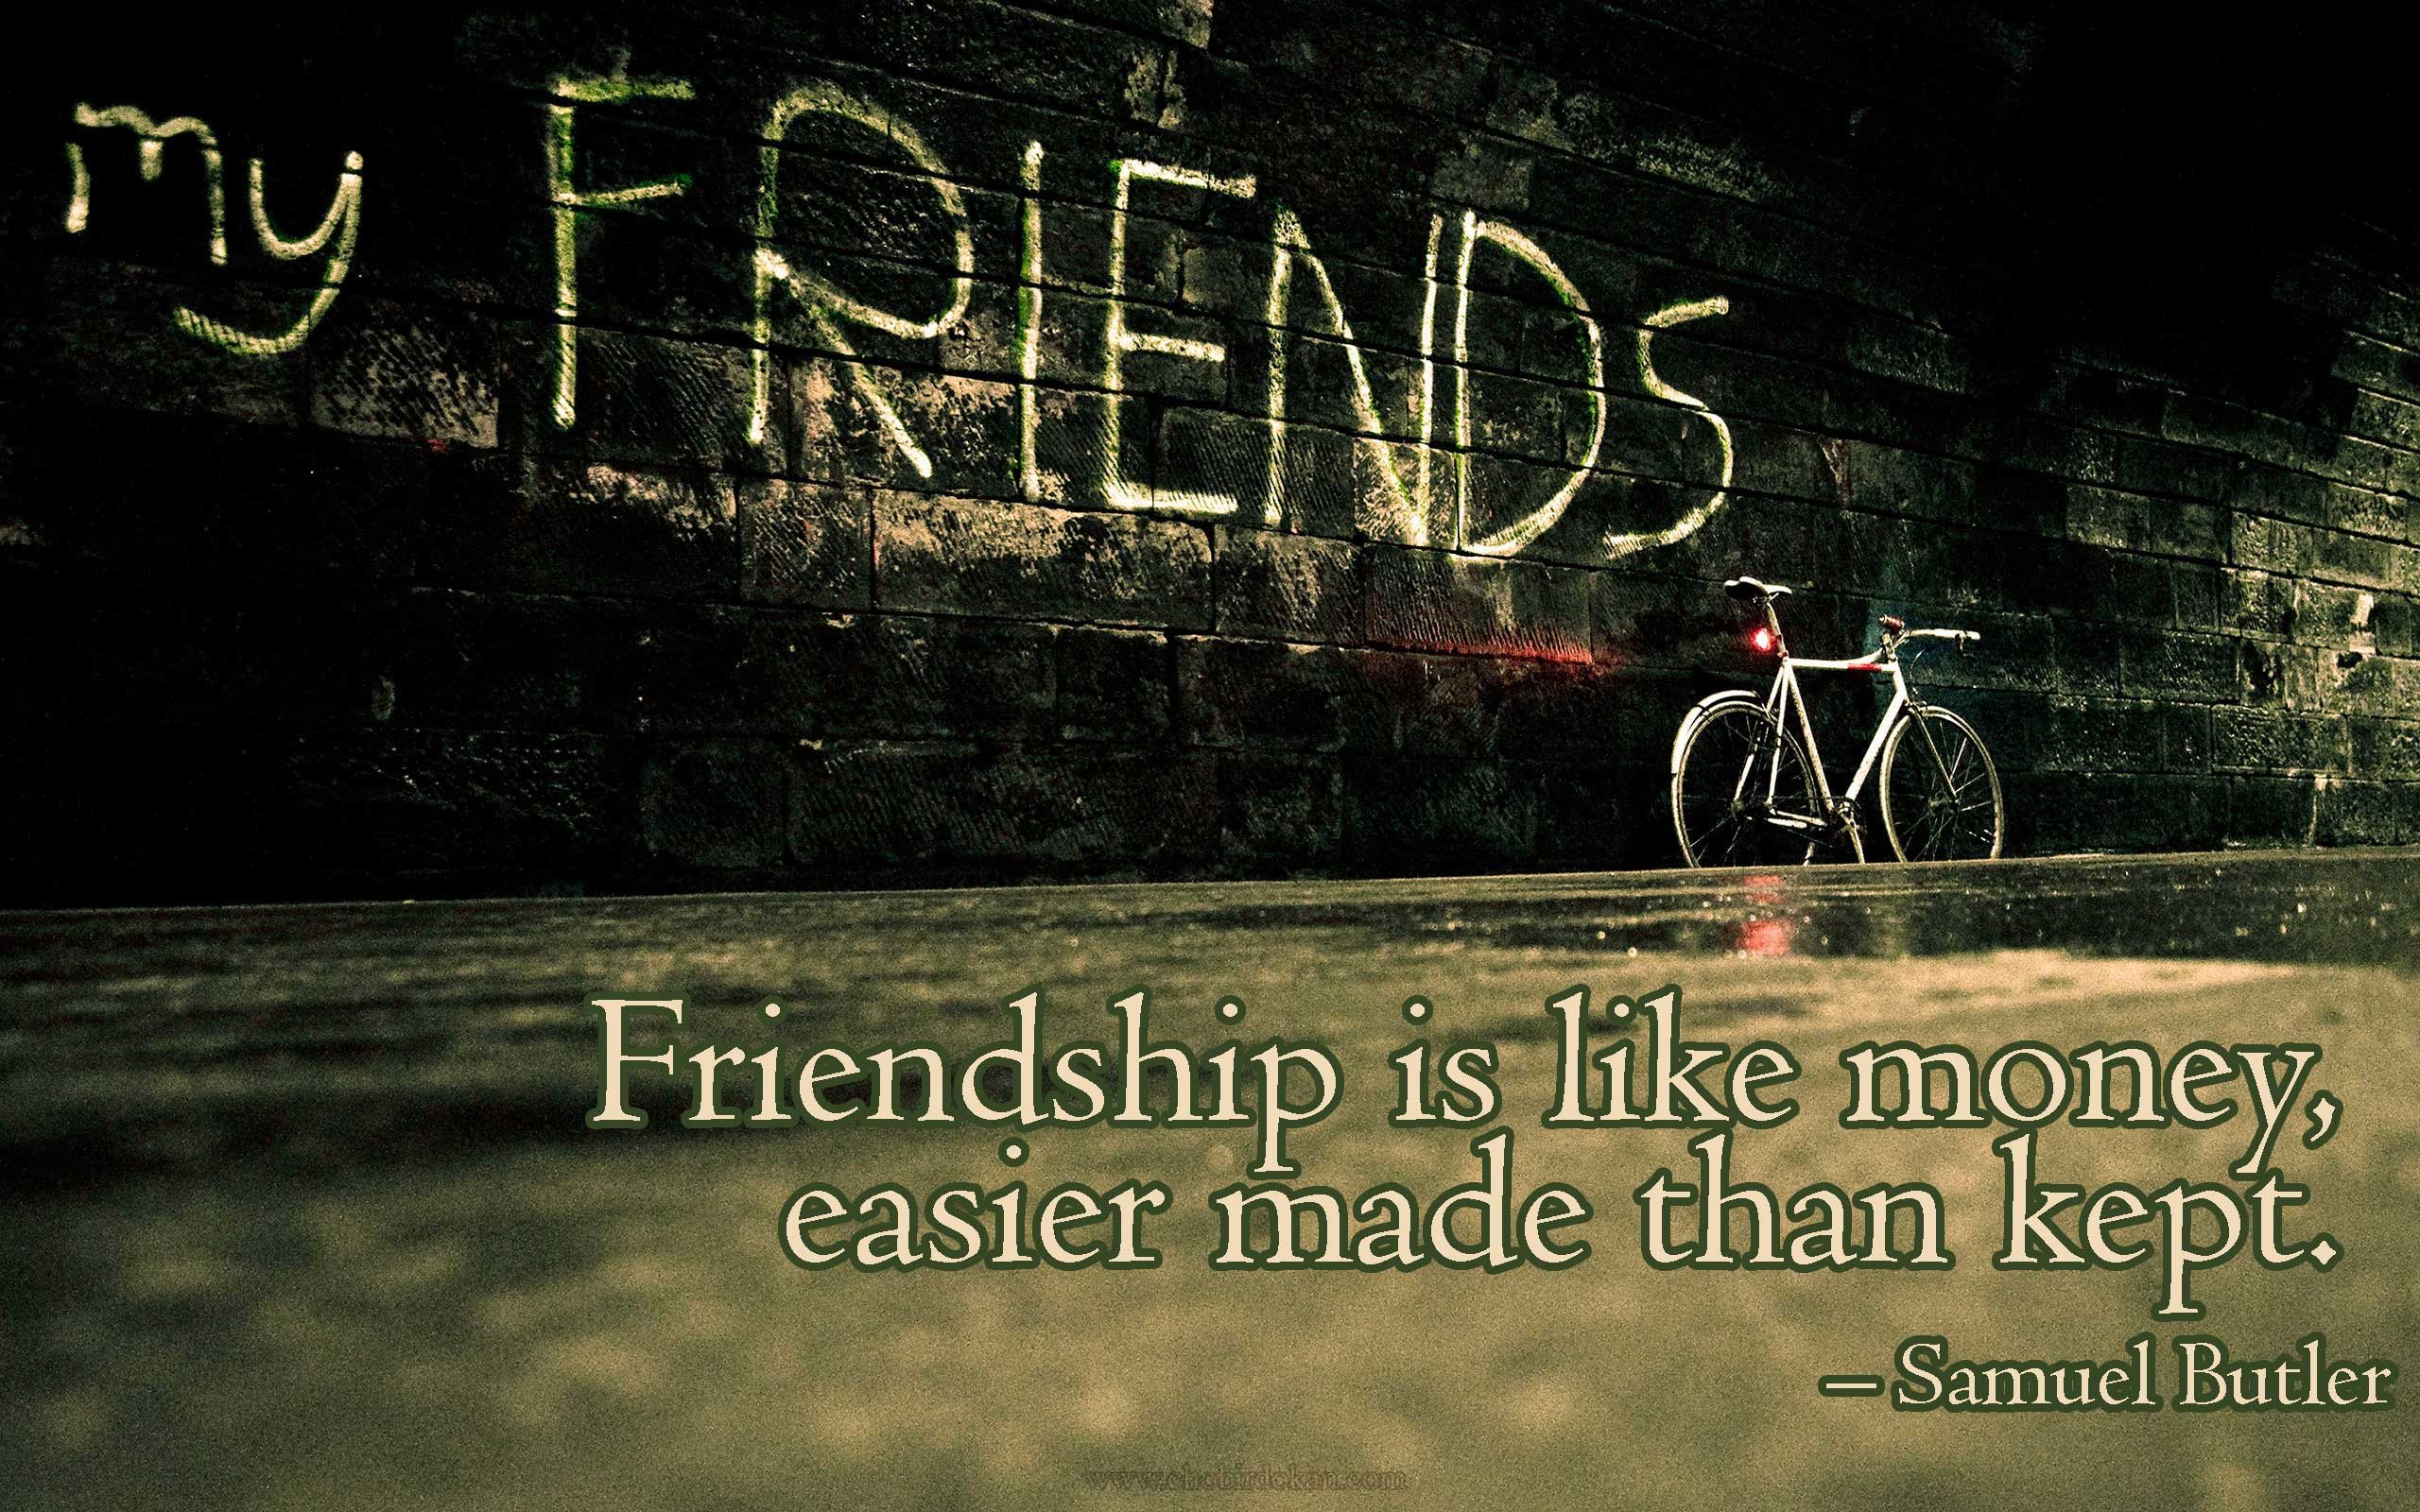 40+ Cute Friendship Quotes With Images | Friendship wallpapers -Chobirdokan